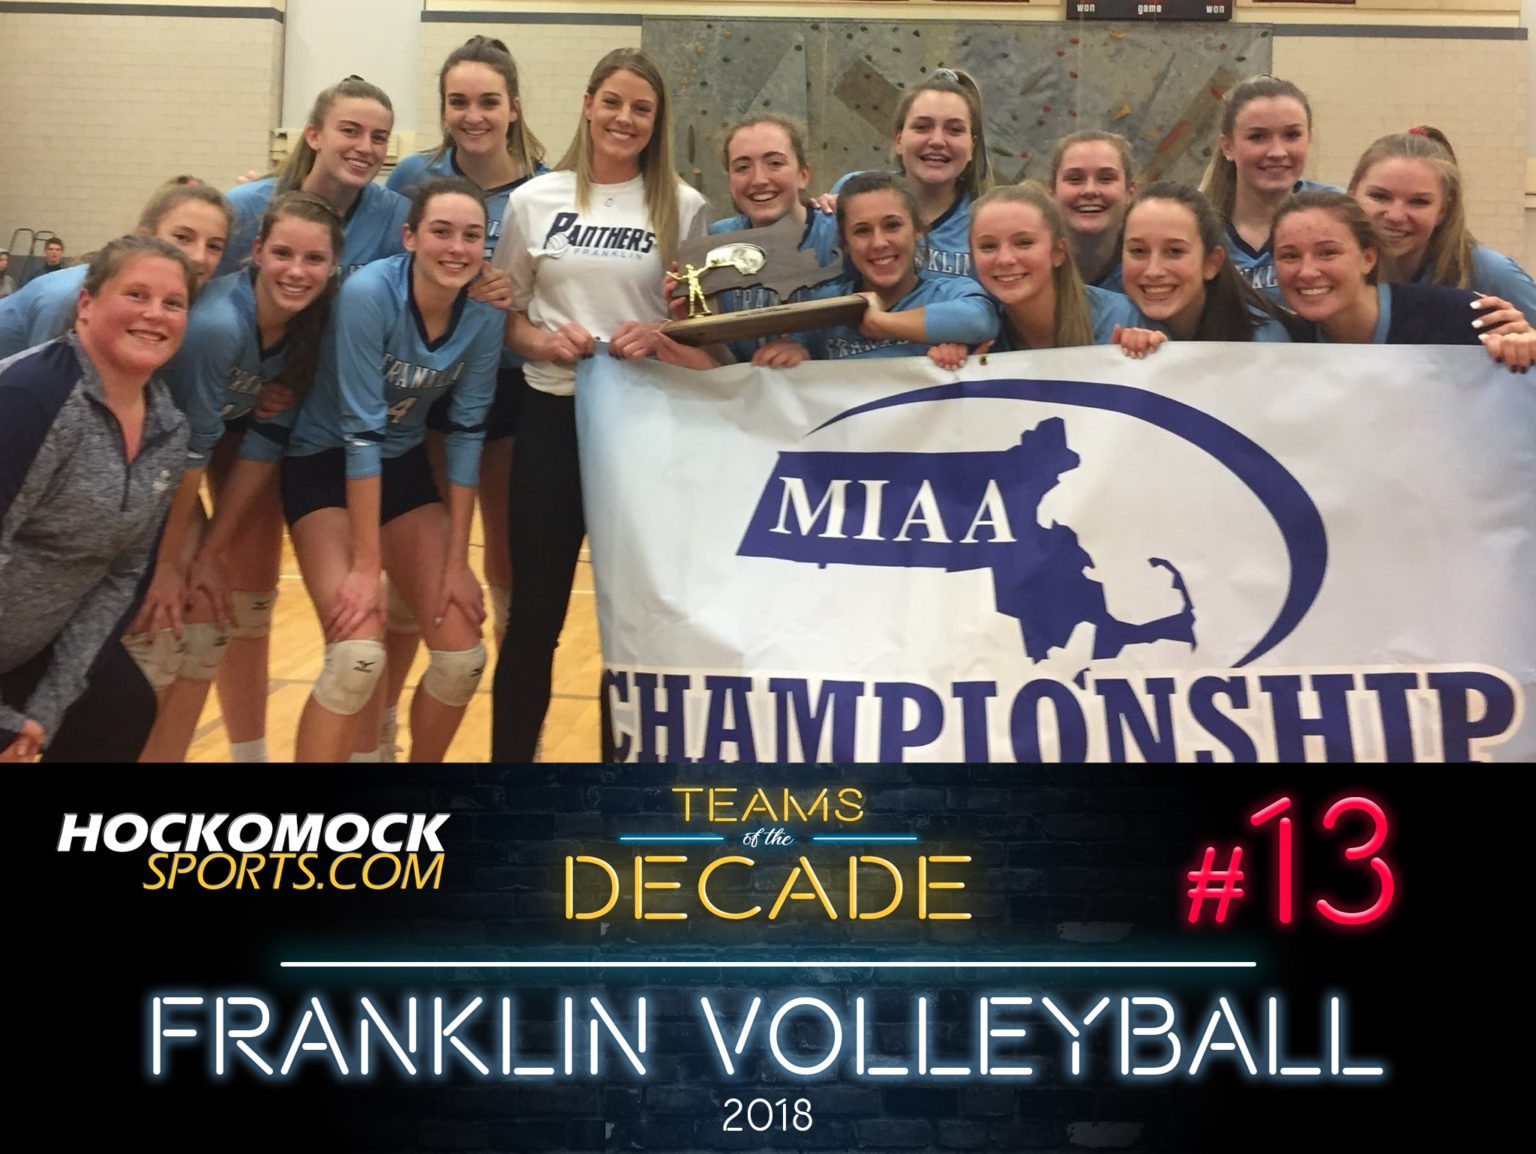 HockomockSports.com: Teams of the Decade #13: 2018 Franklin Volleyball